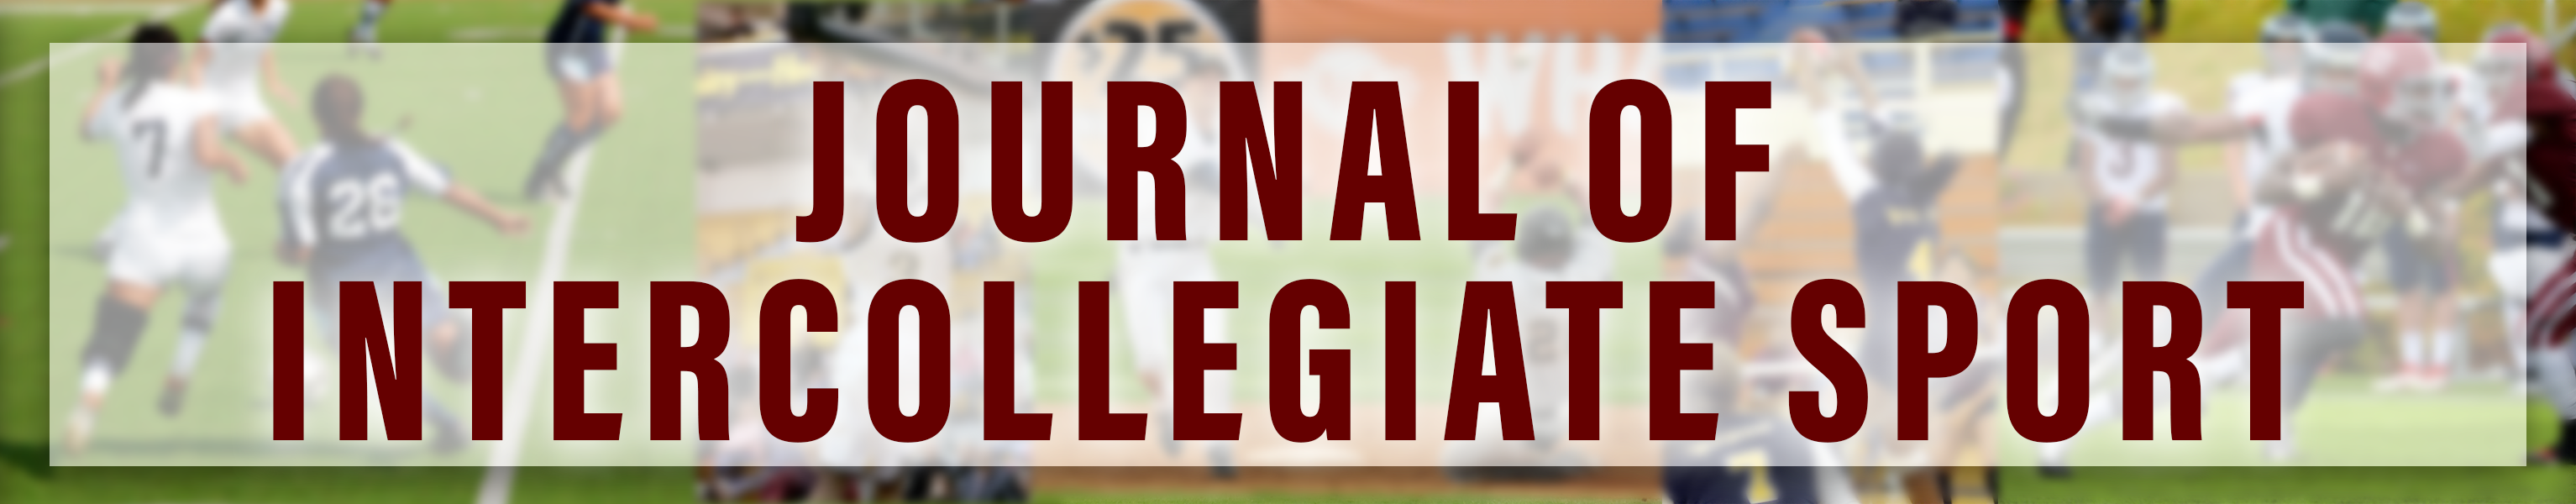 Journal of Intercollegiate Sport:  Images from soccer, basketball, baseball, volleyball, and hockey